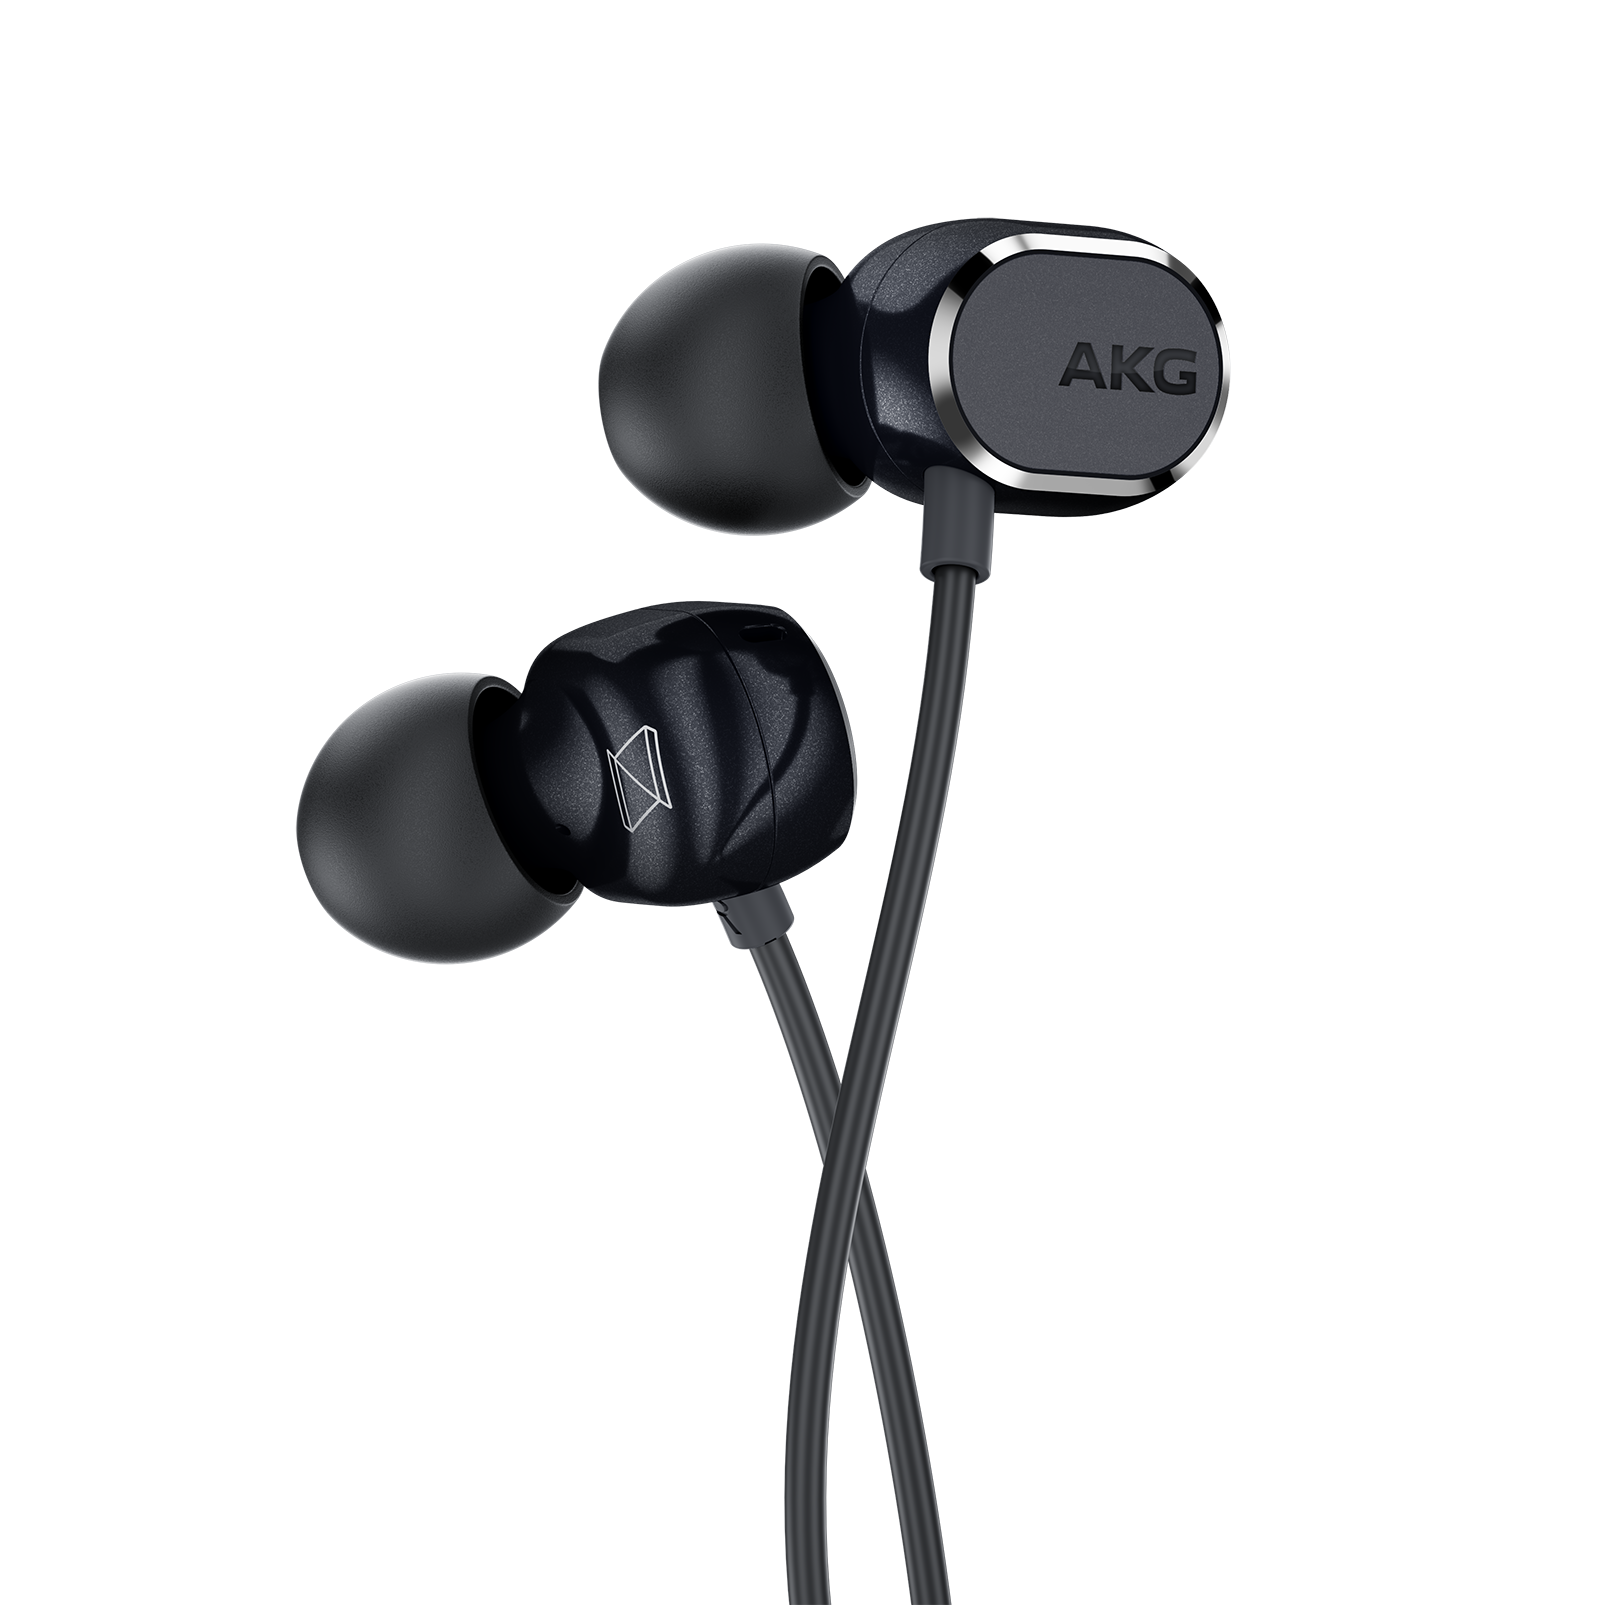 AKG N25 - Black - Hi-Res in-ear headphones - Detailshot 1